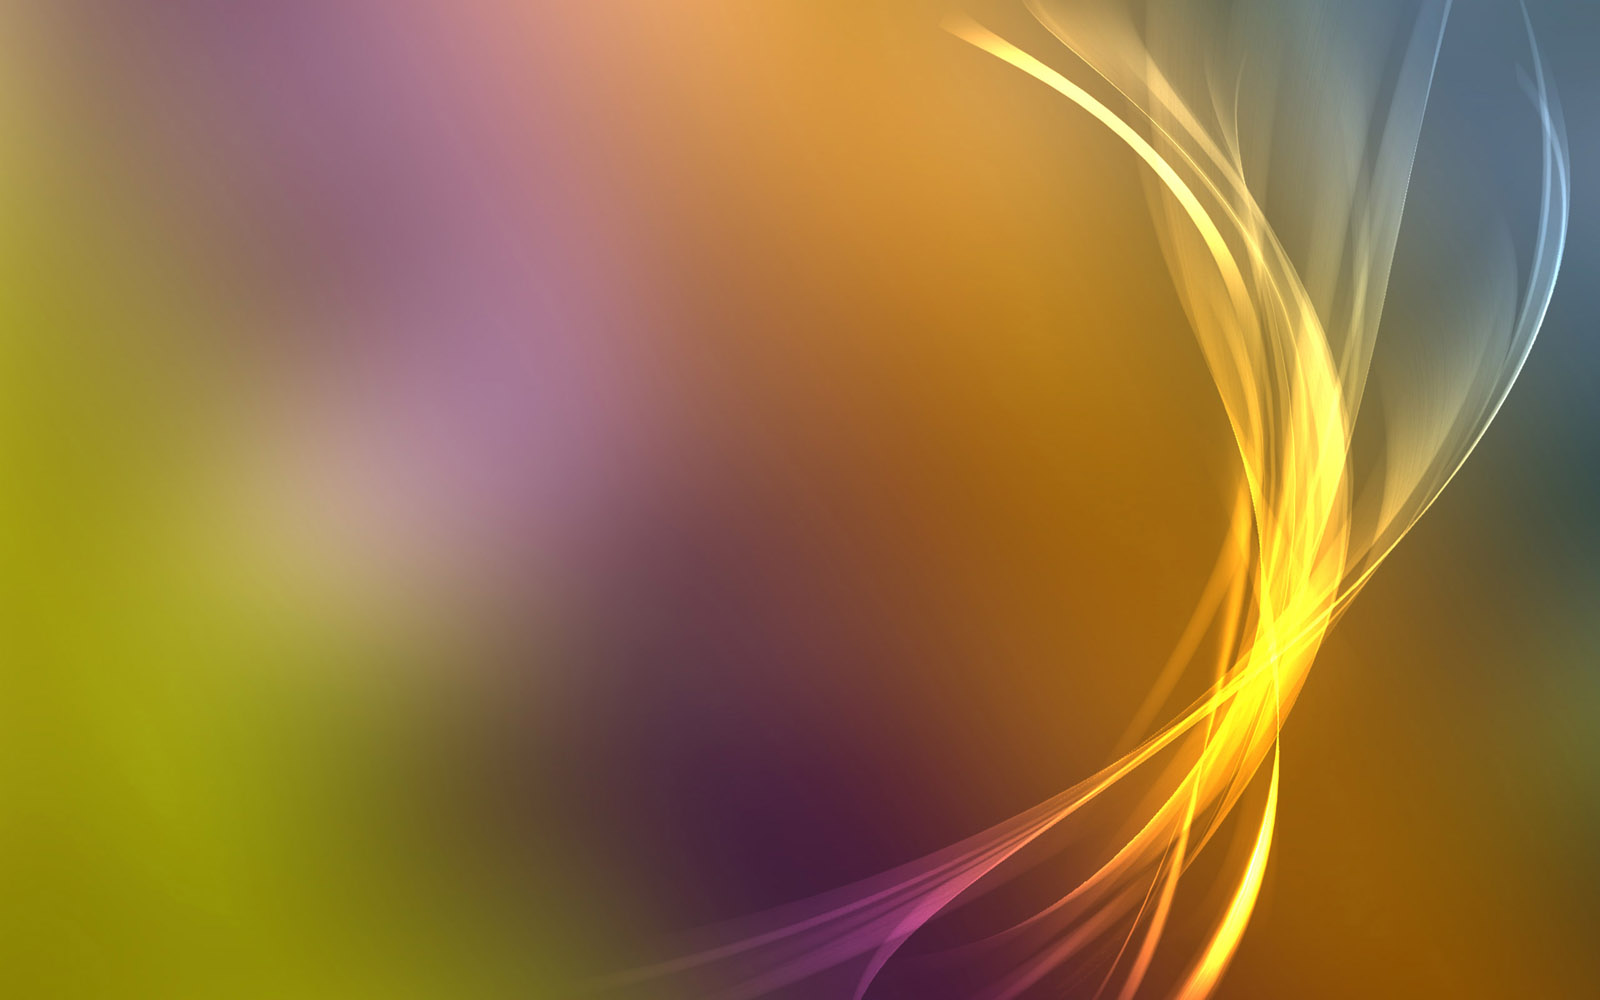 Background color 3676